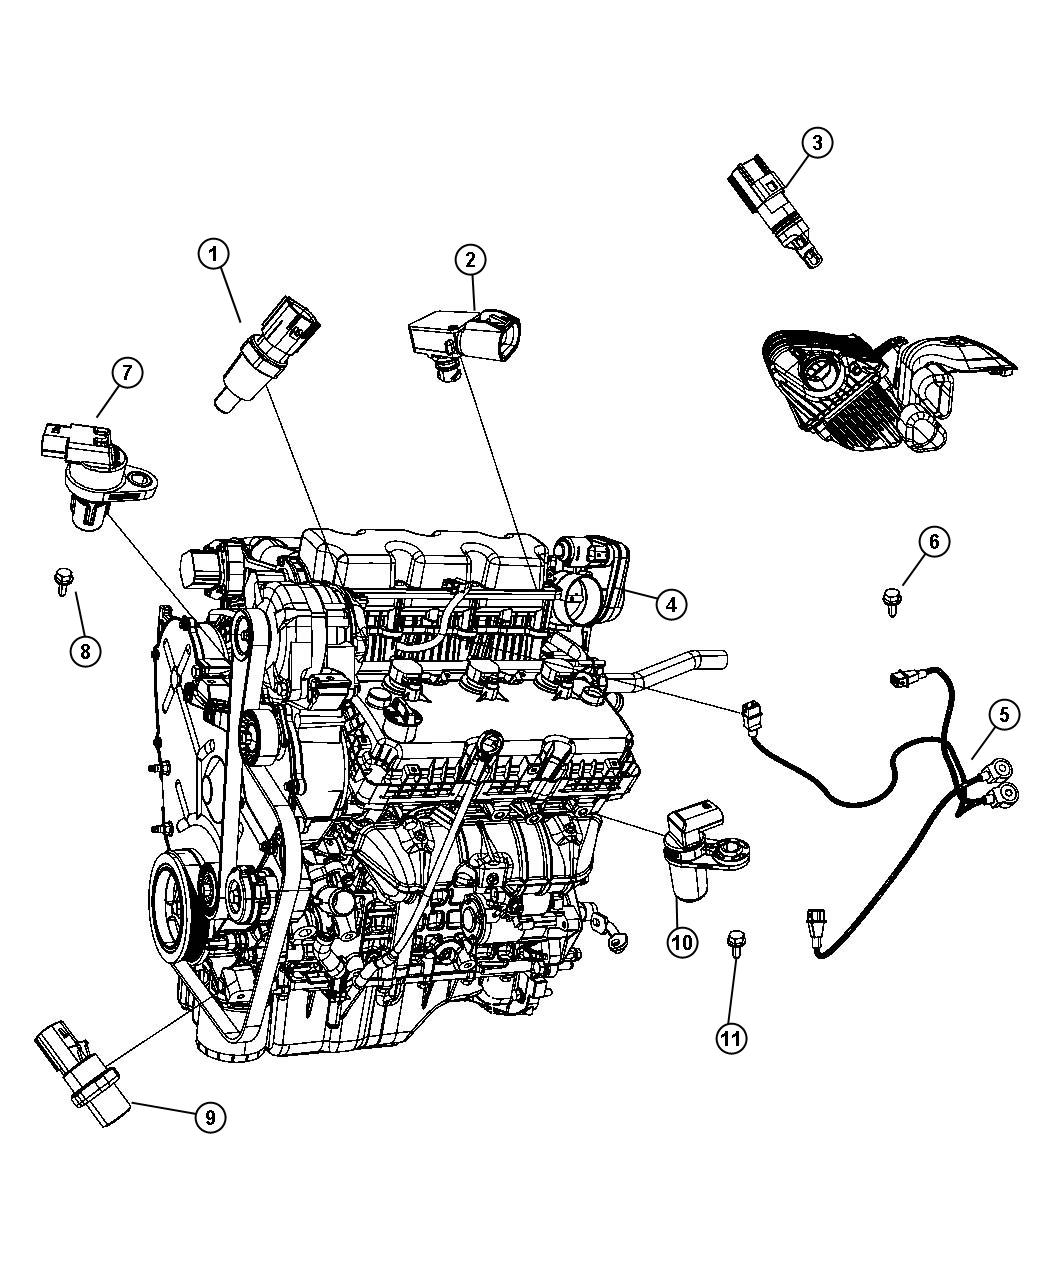 2004 Jetta Parts Diagram Wiring Will Be A Thing 2003 1 8 Volkswagon Passat Engine Volkswagen Air Conditioning Vw Fuel